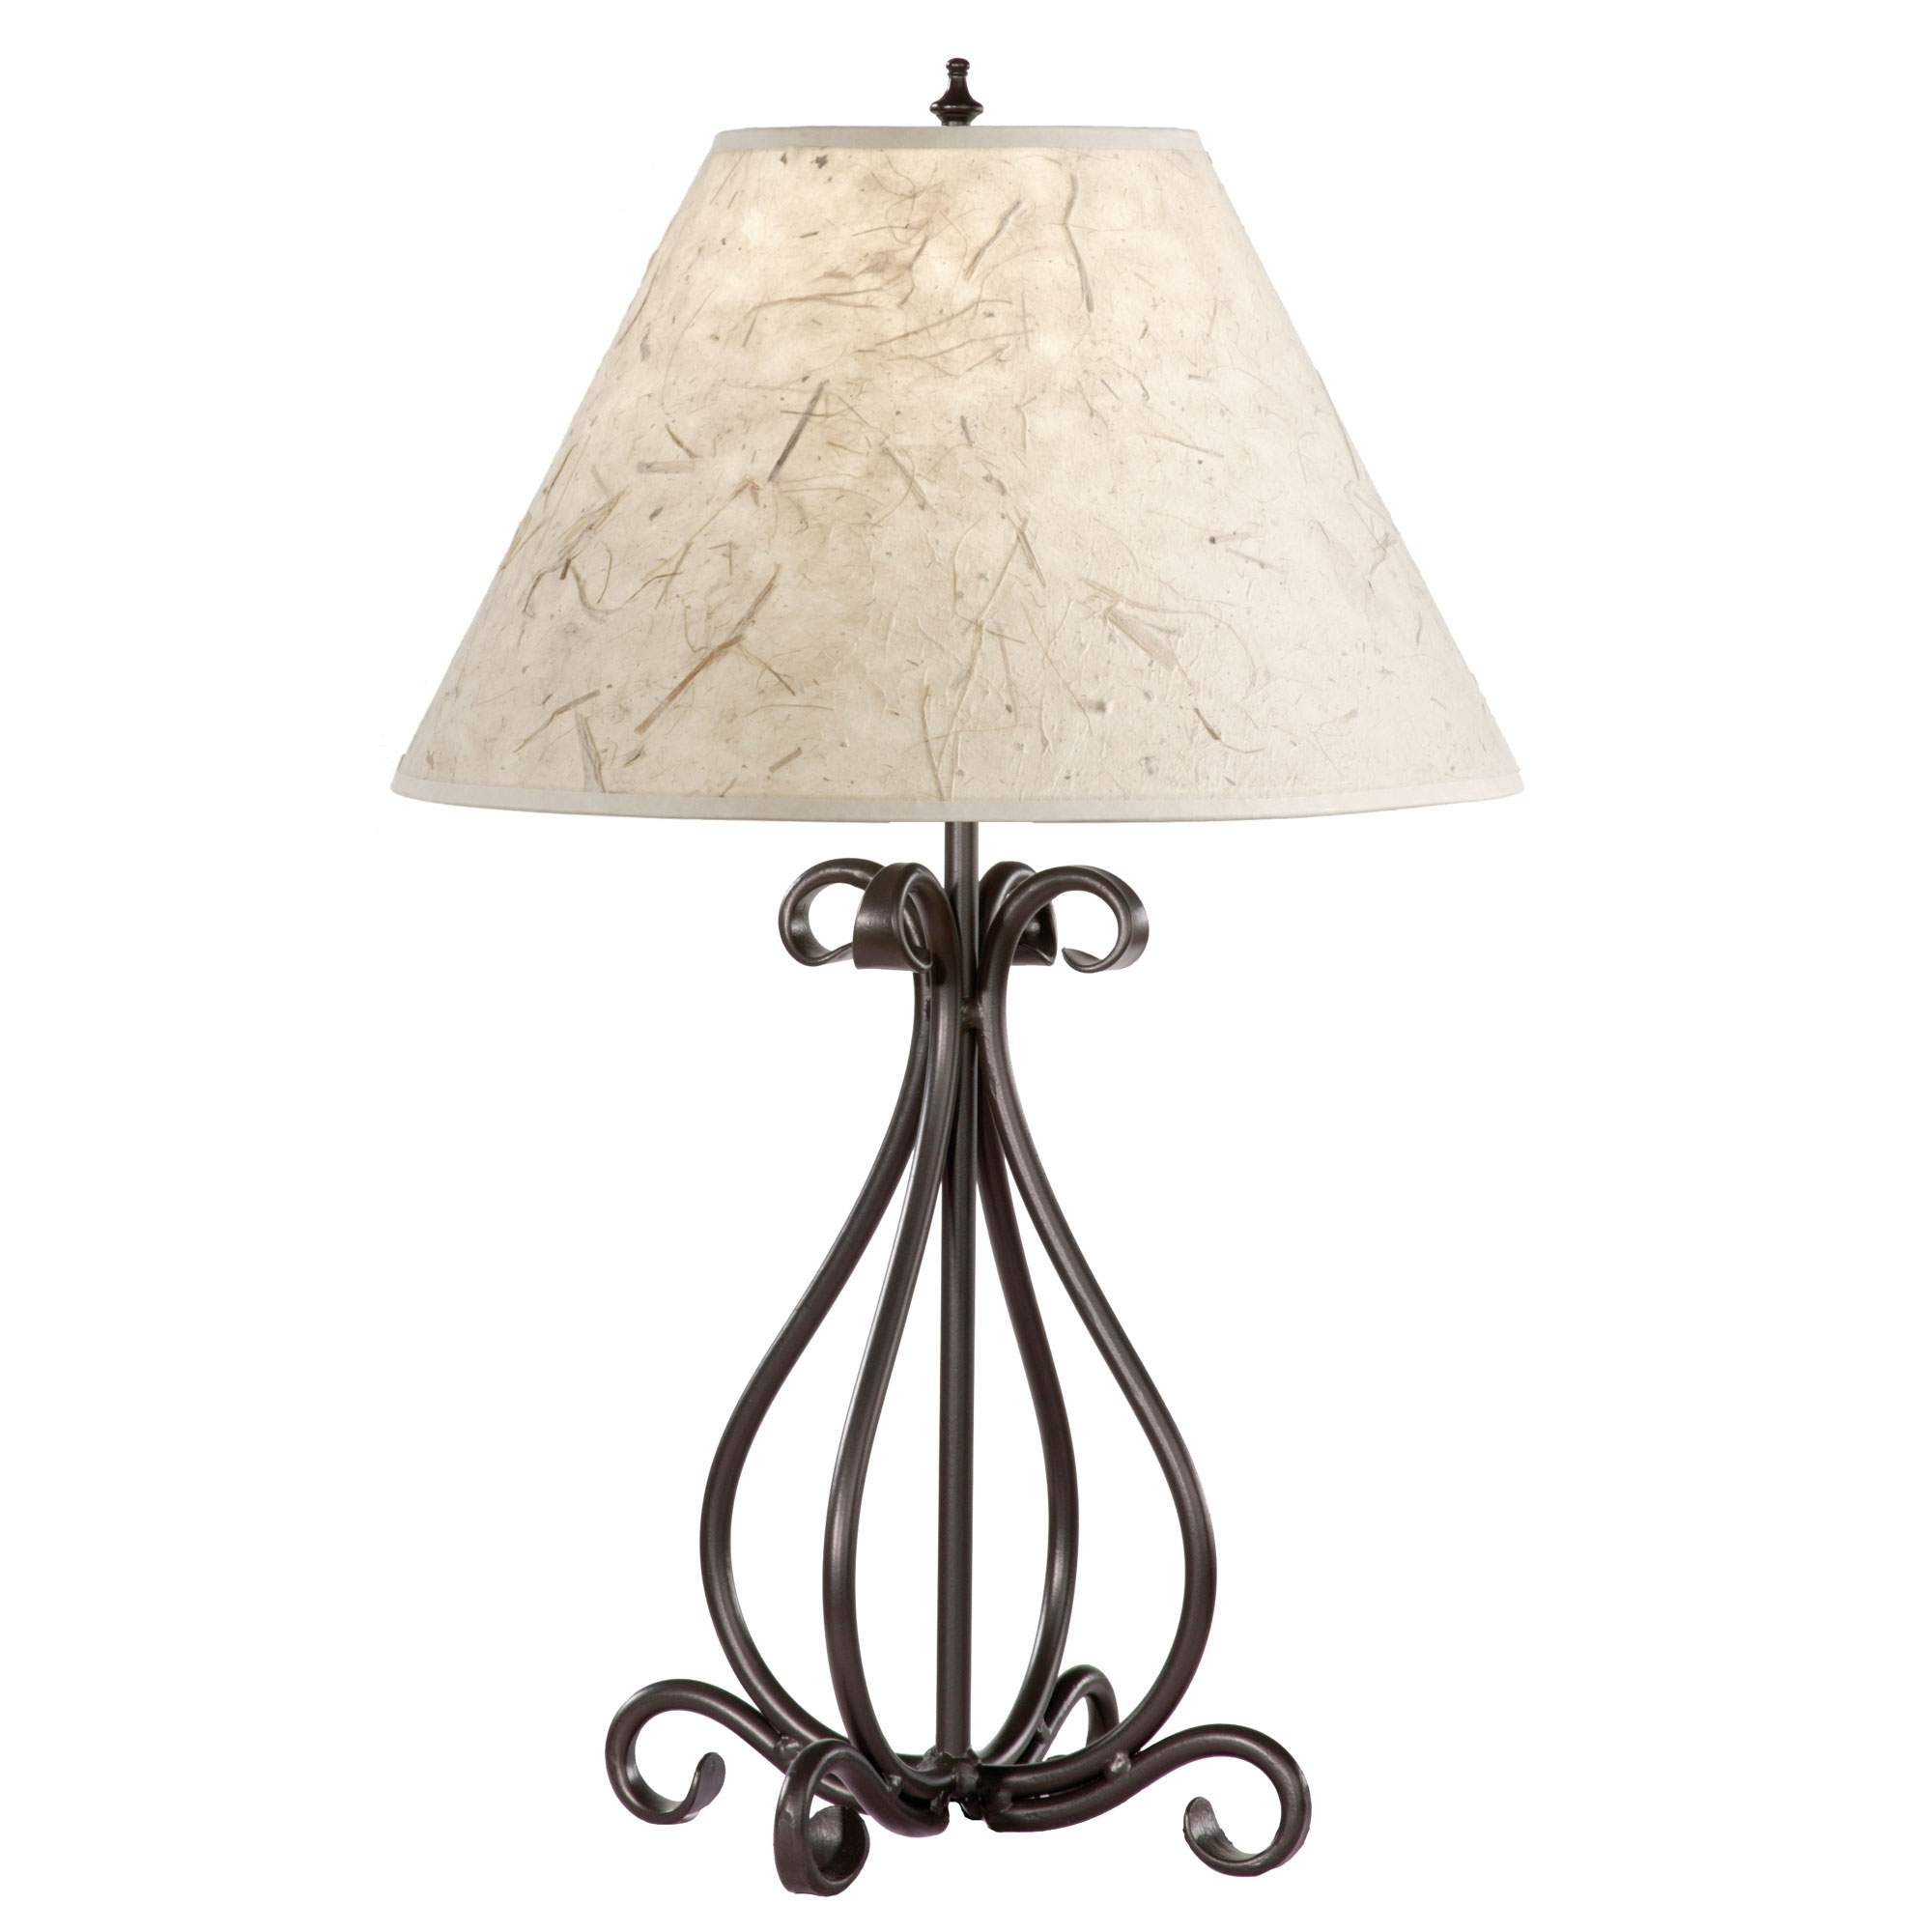 Wrought Iron Living Room Table Lamps Pertaining To 2019 10 Important Facts That You Should Know About Wrought Iron (View 12 of 20)